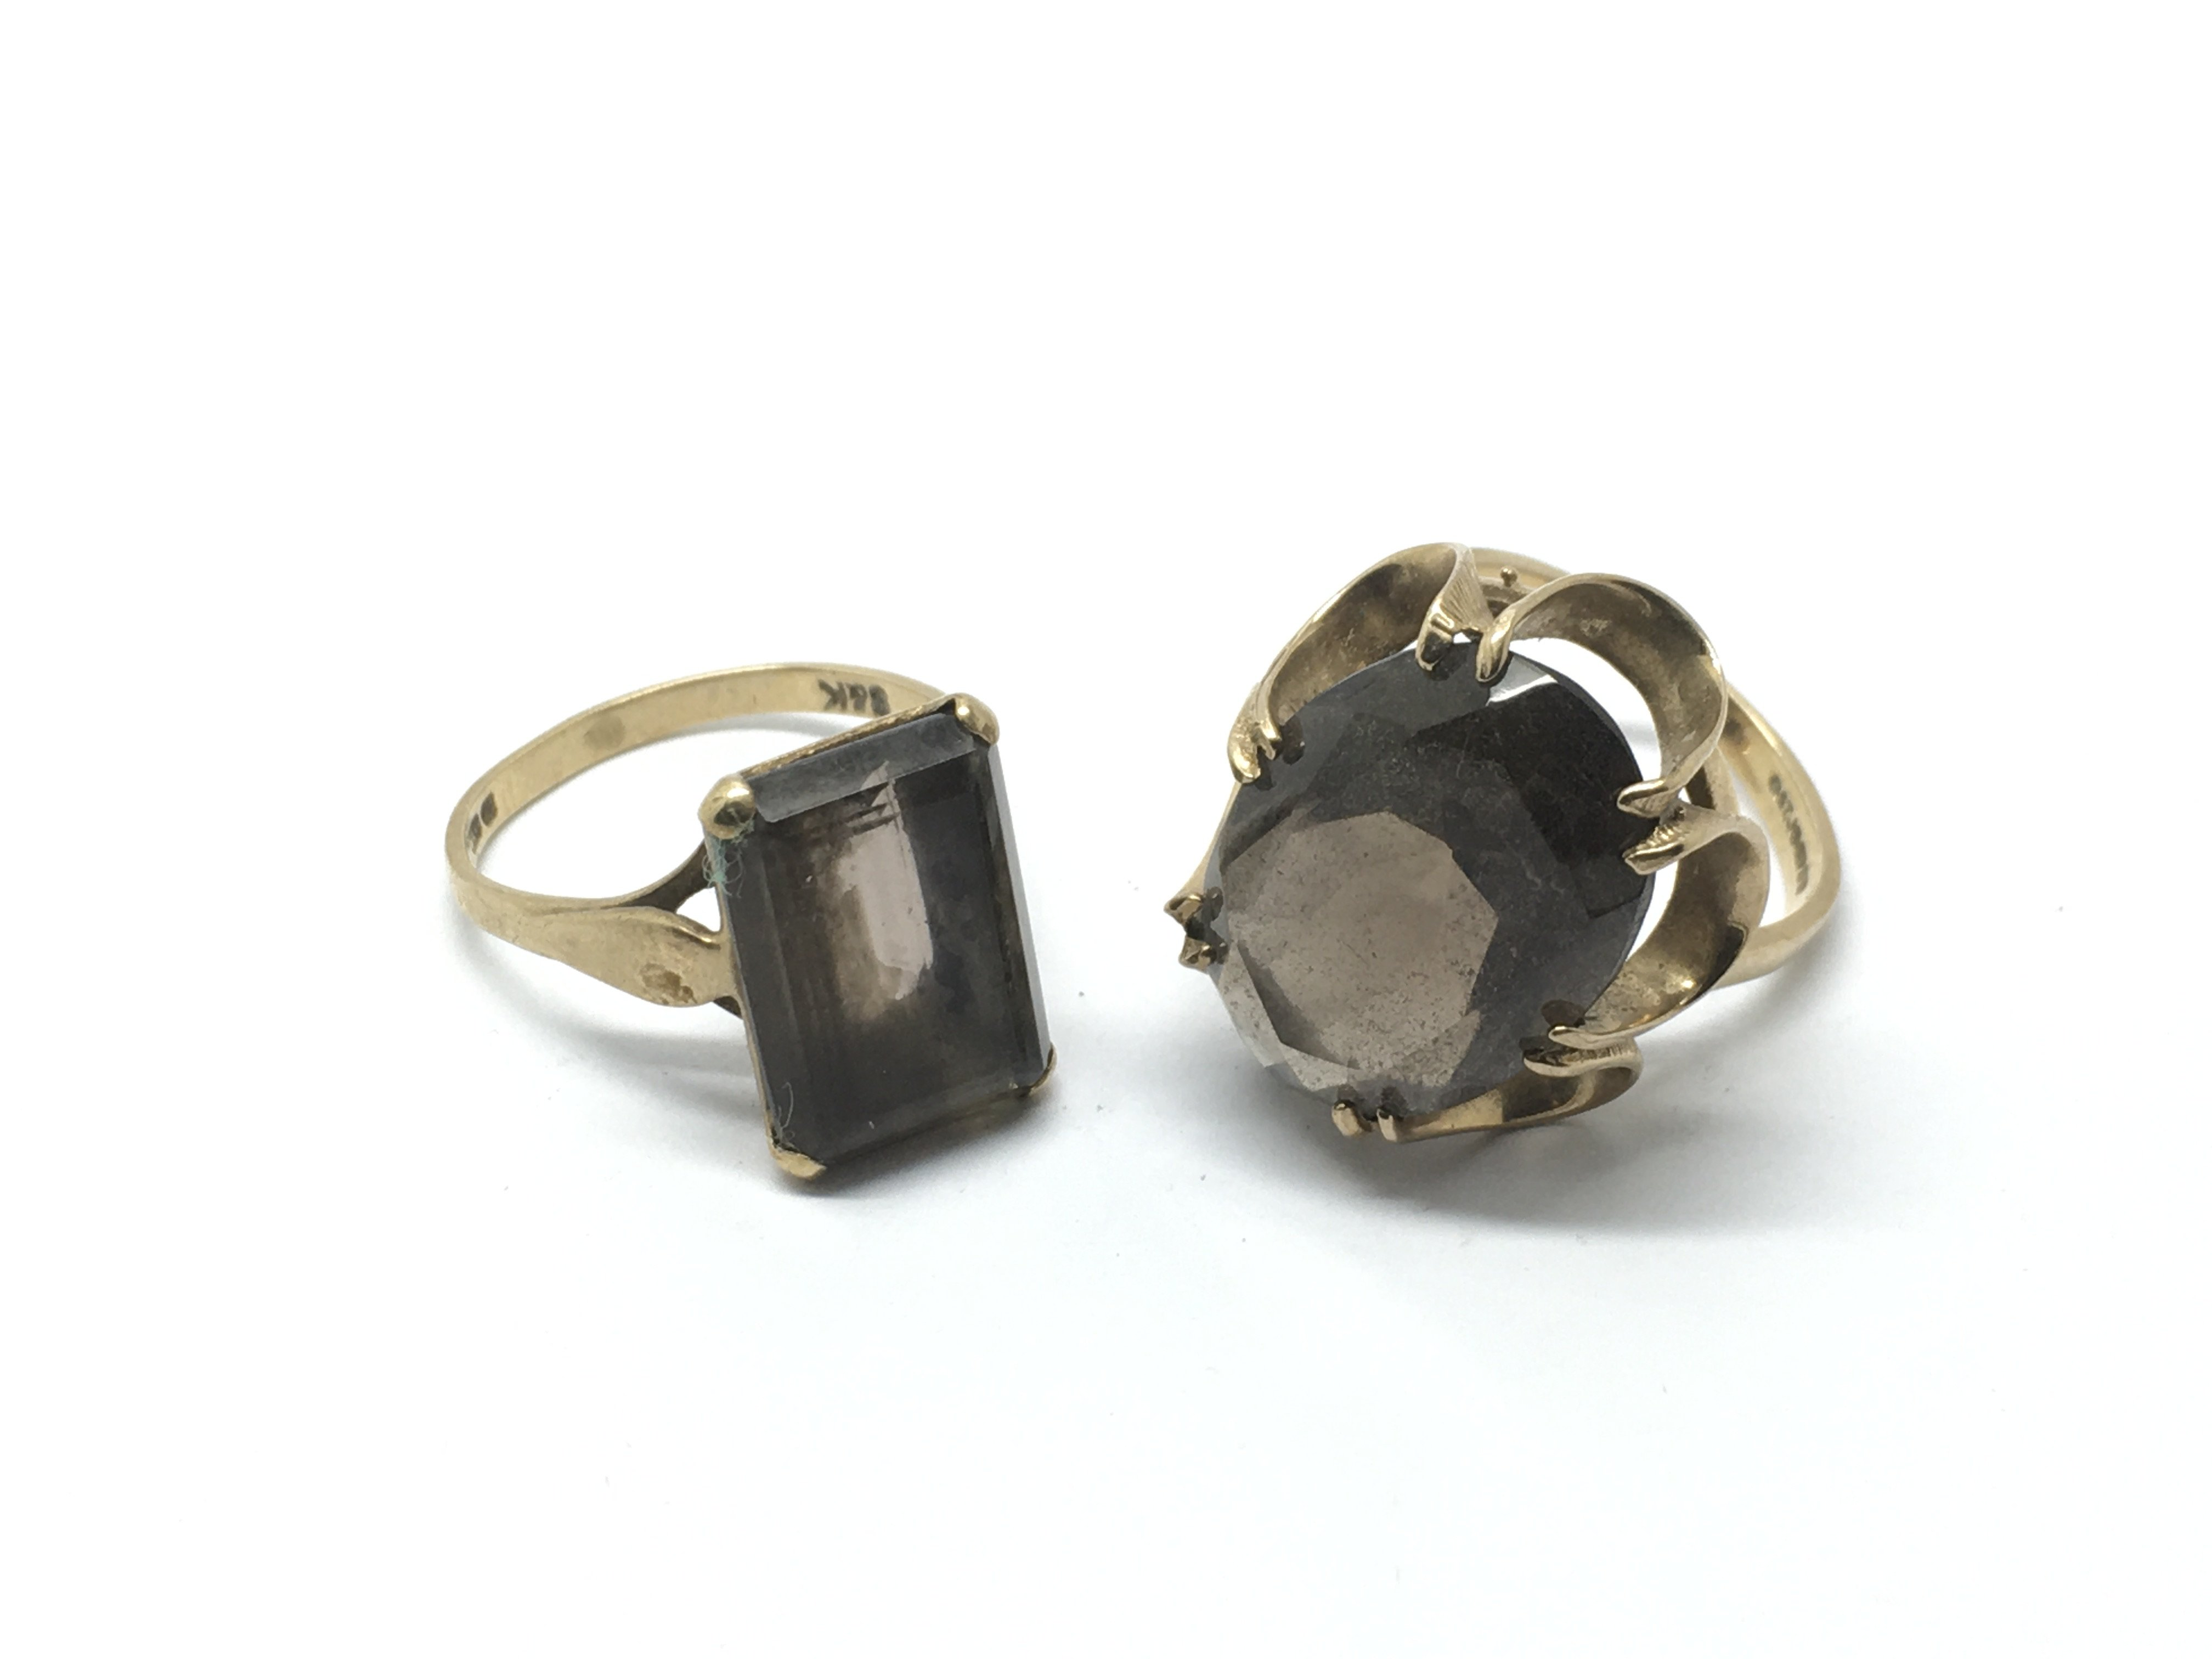 Two 9ct gold rings set with quartz stones, approx